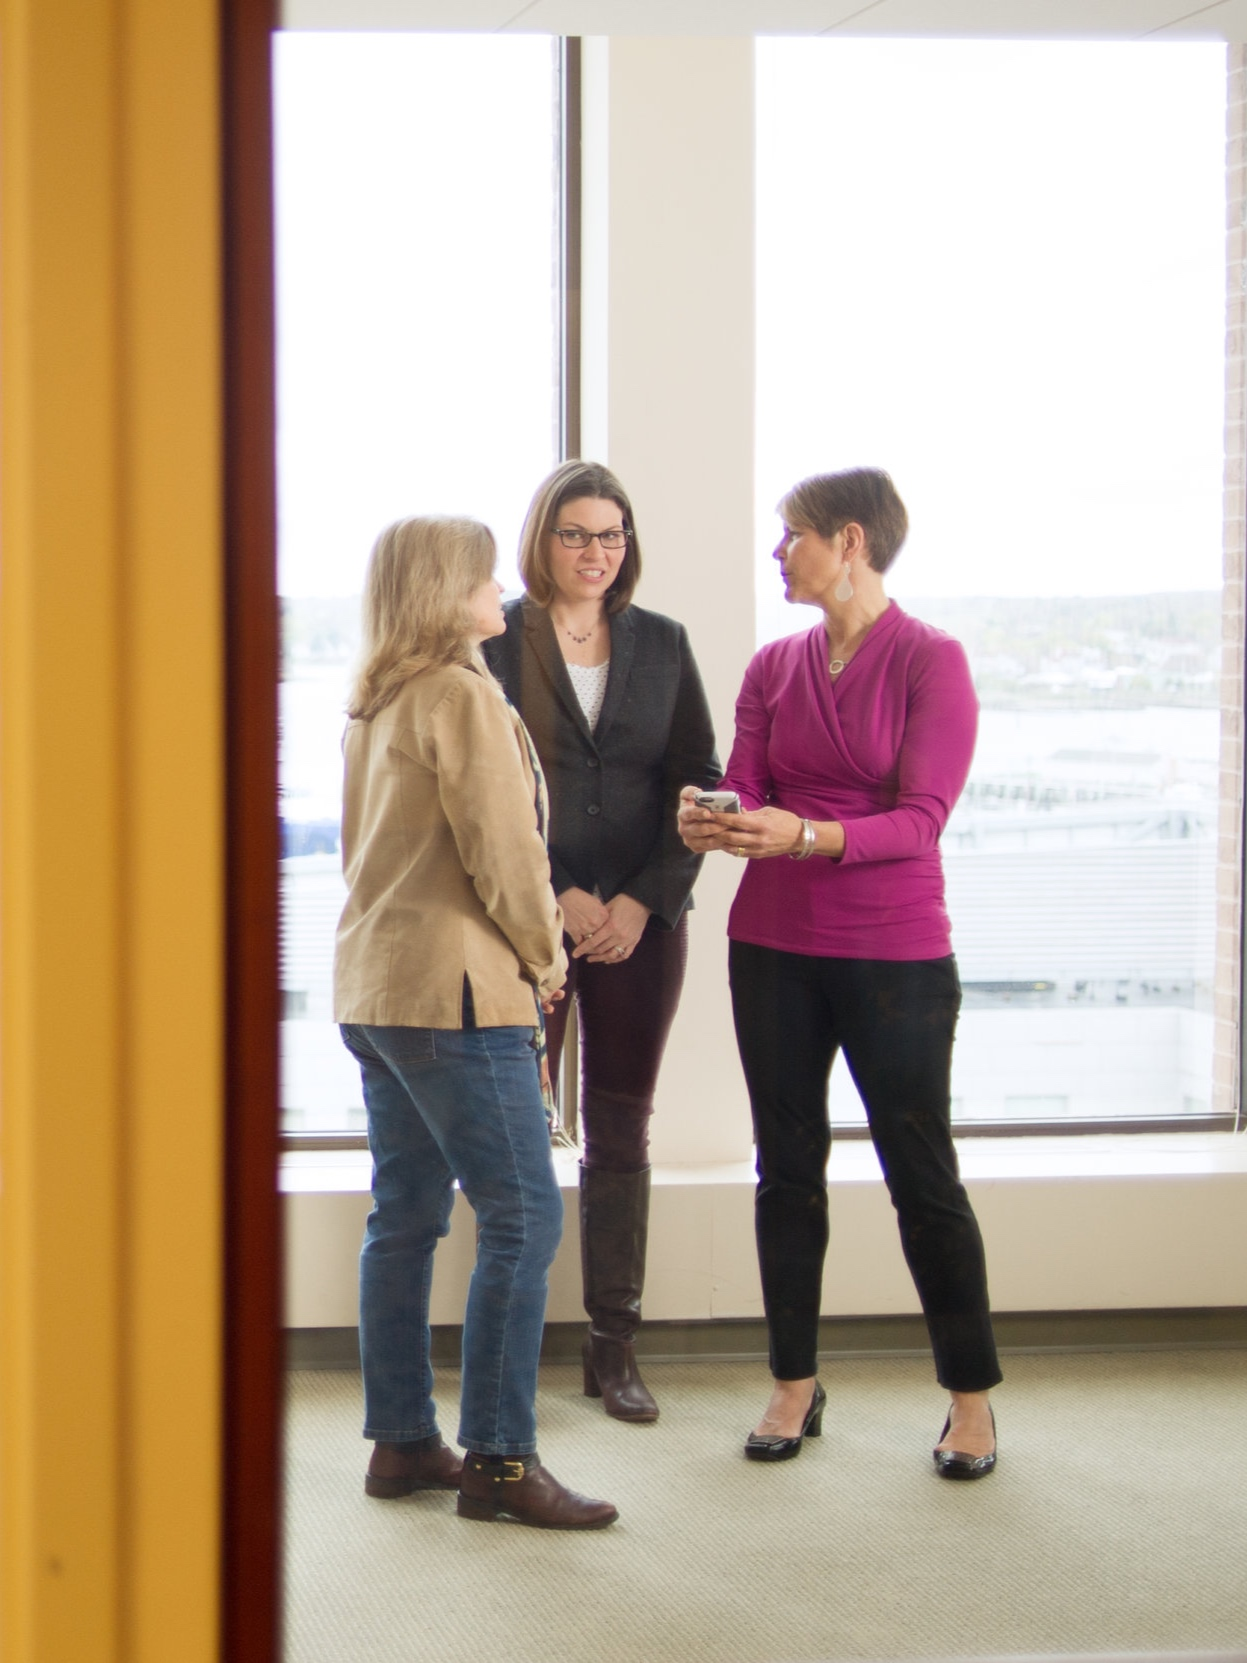 Our Mission - Women Standing Together is a community that comes together to support and accelerate the advancement of women as entrepreneurs and leaders.Learn More